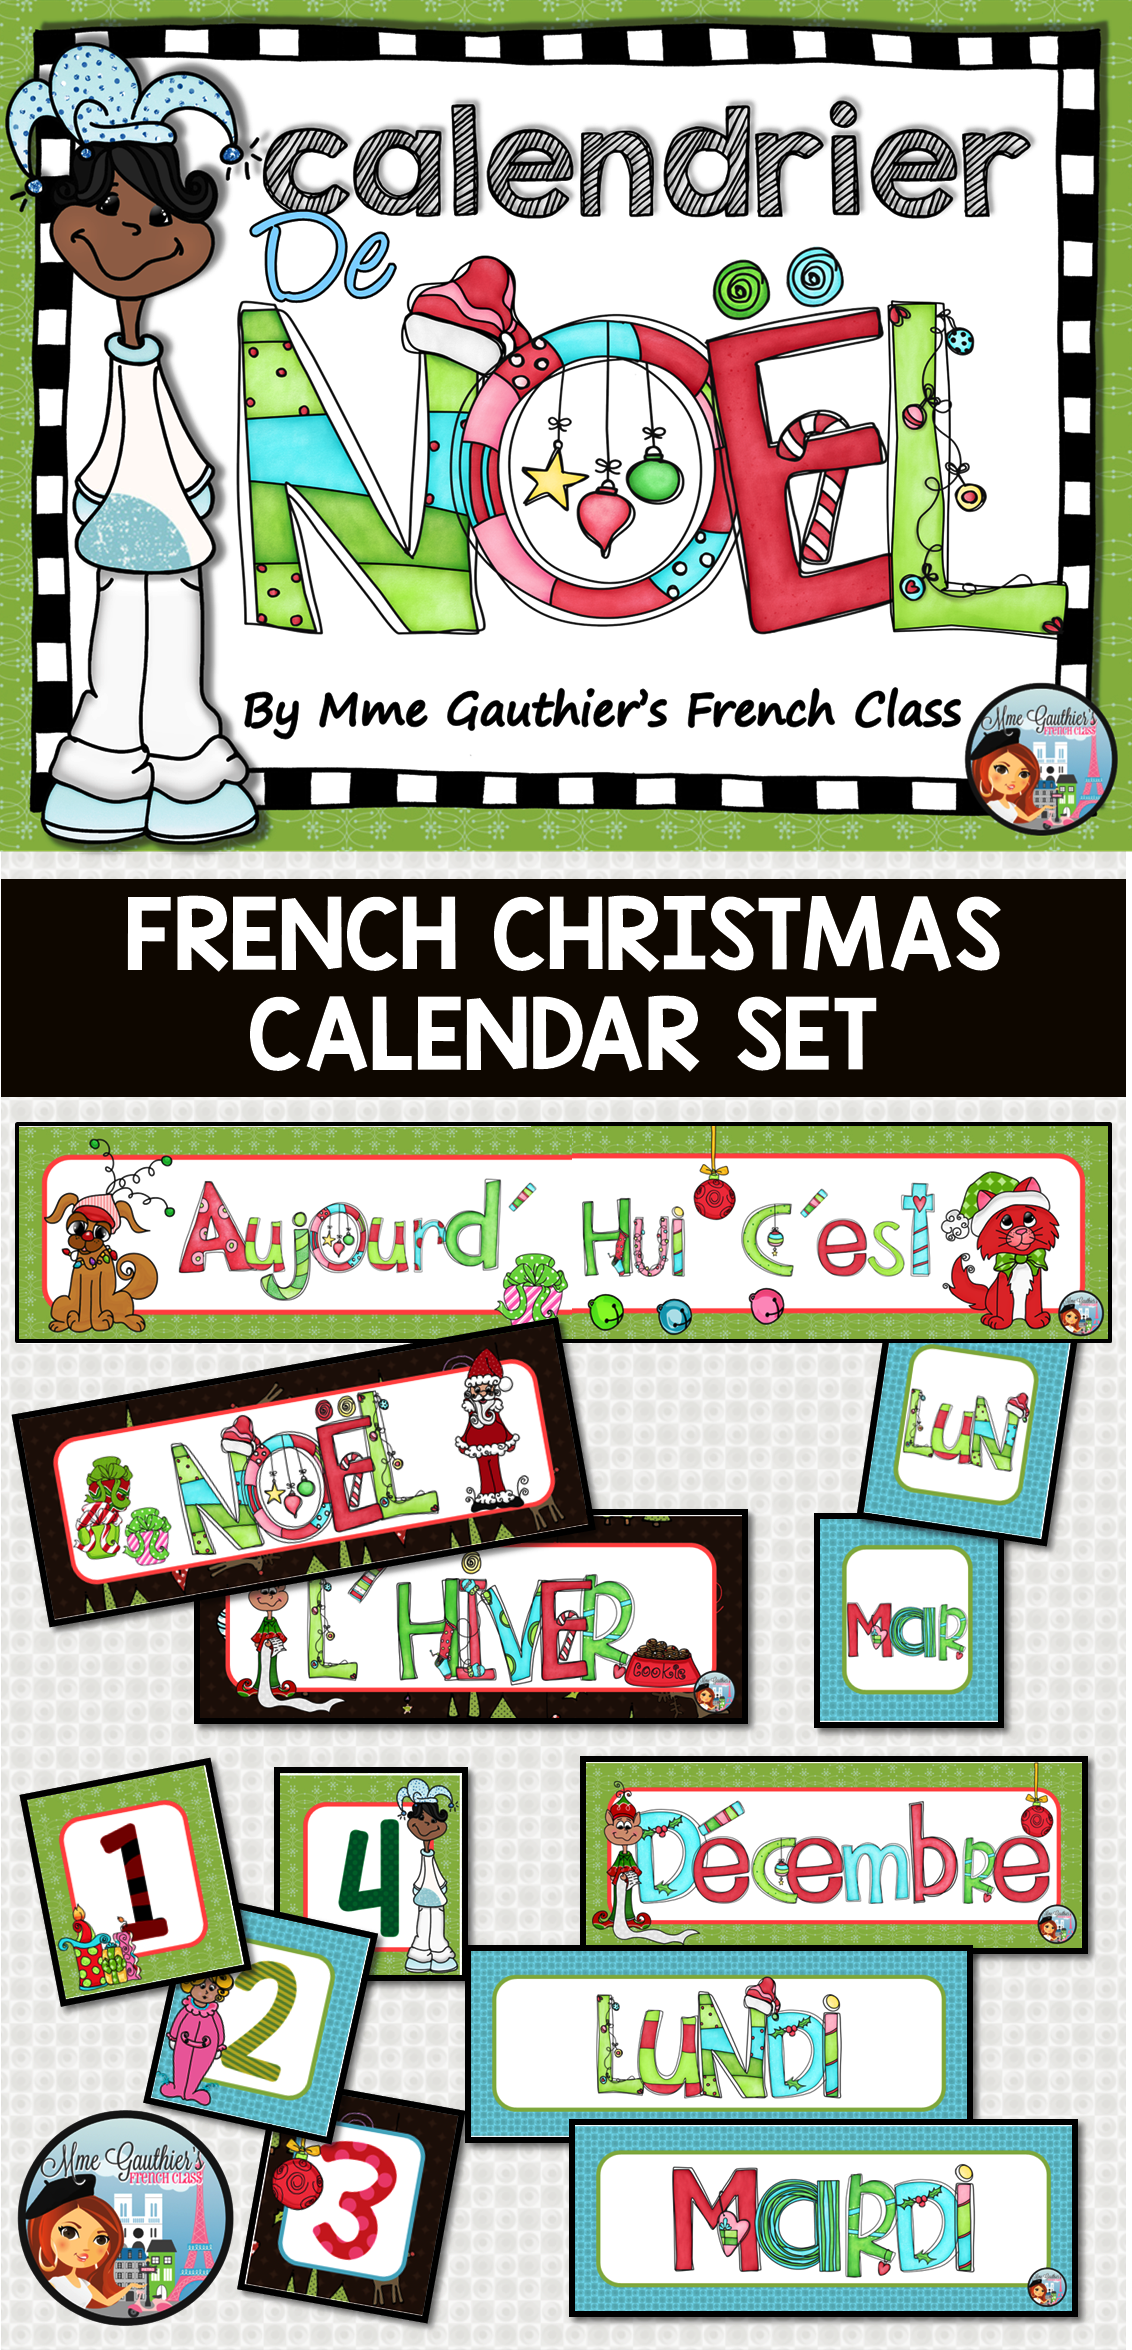 French Christmas Calendar Set